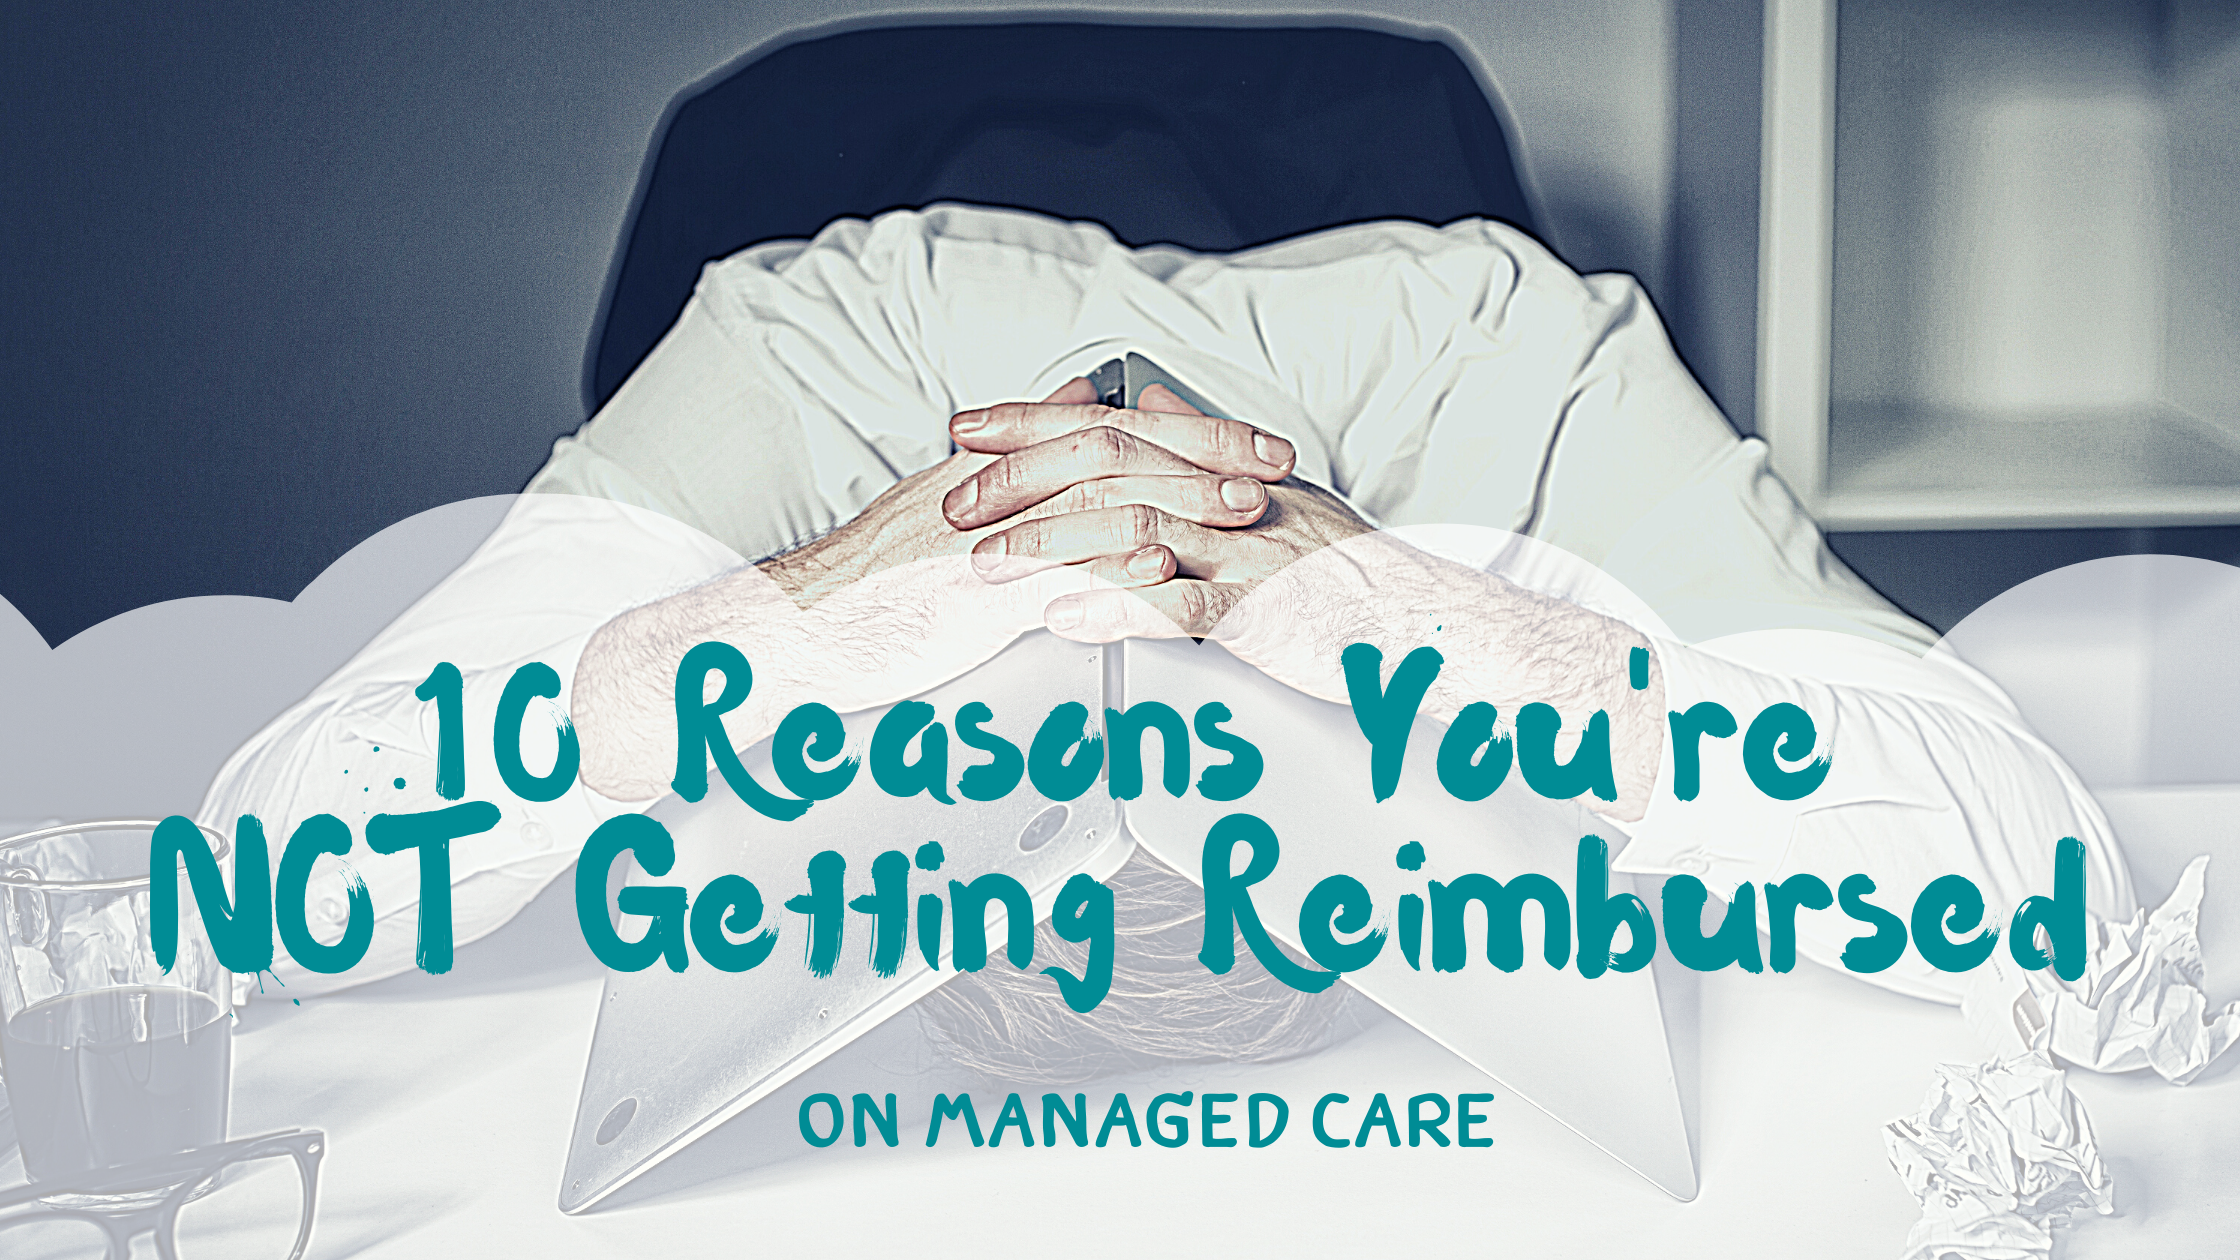 10-reasons-not-getting-remimbursed-managed-care